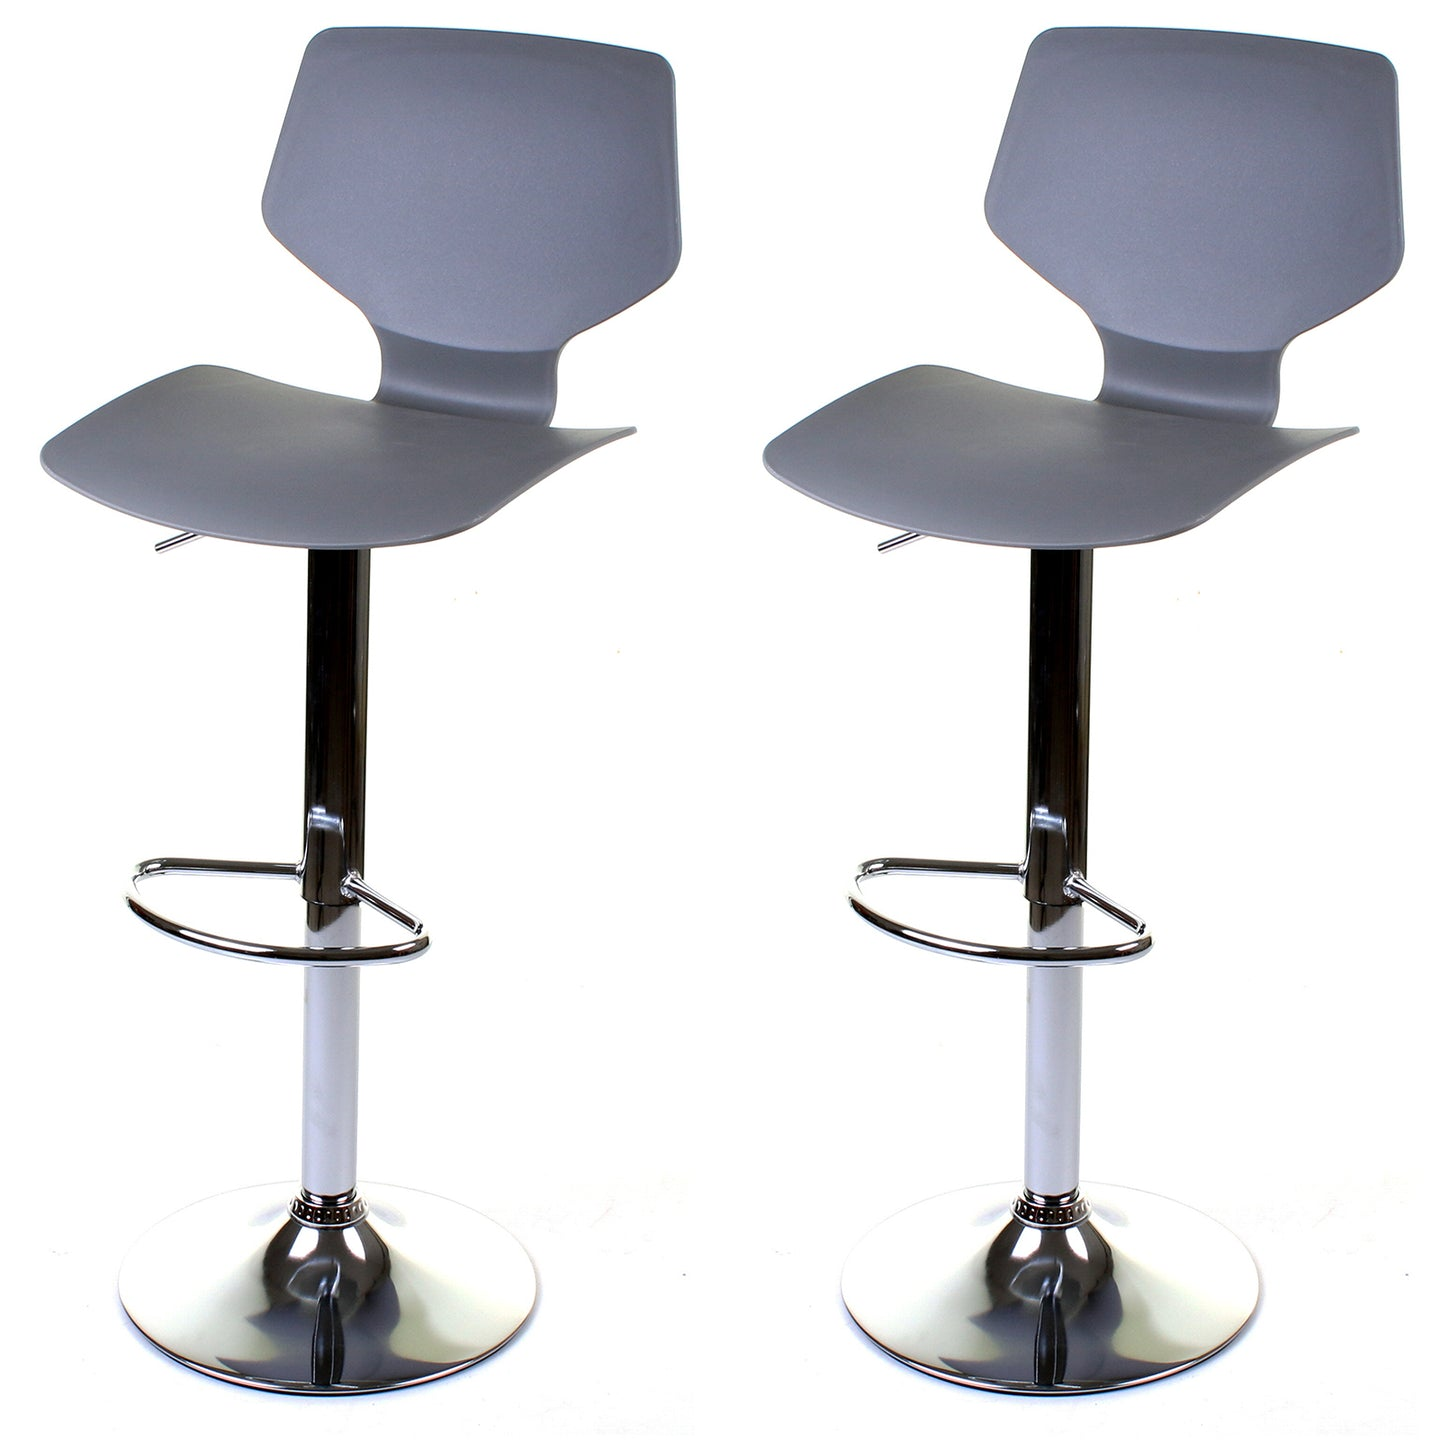 Brianza Bar Stool - Grey - Set of 2